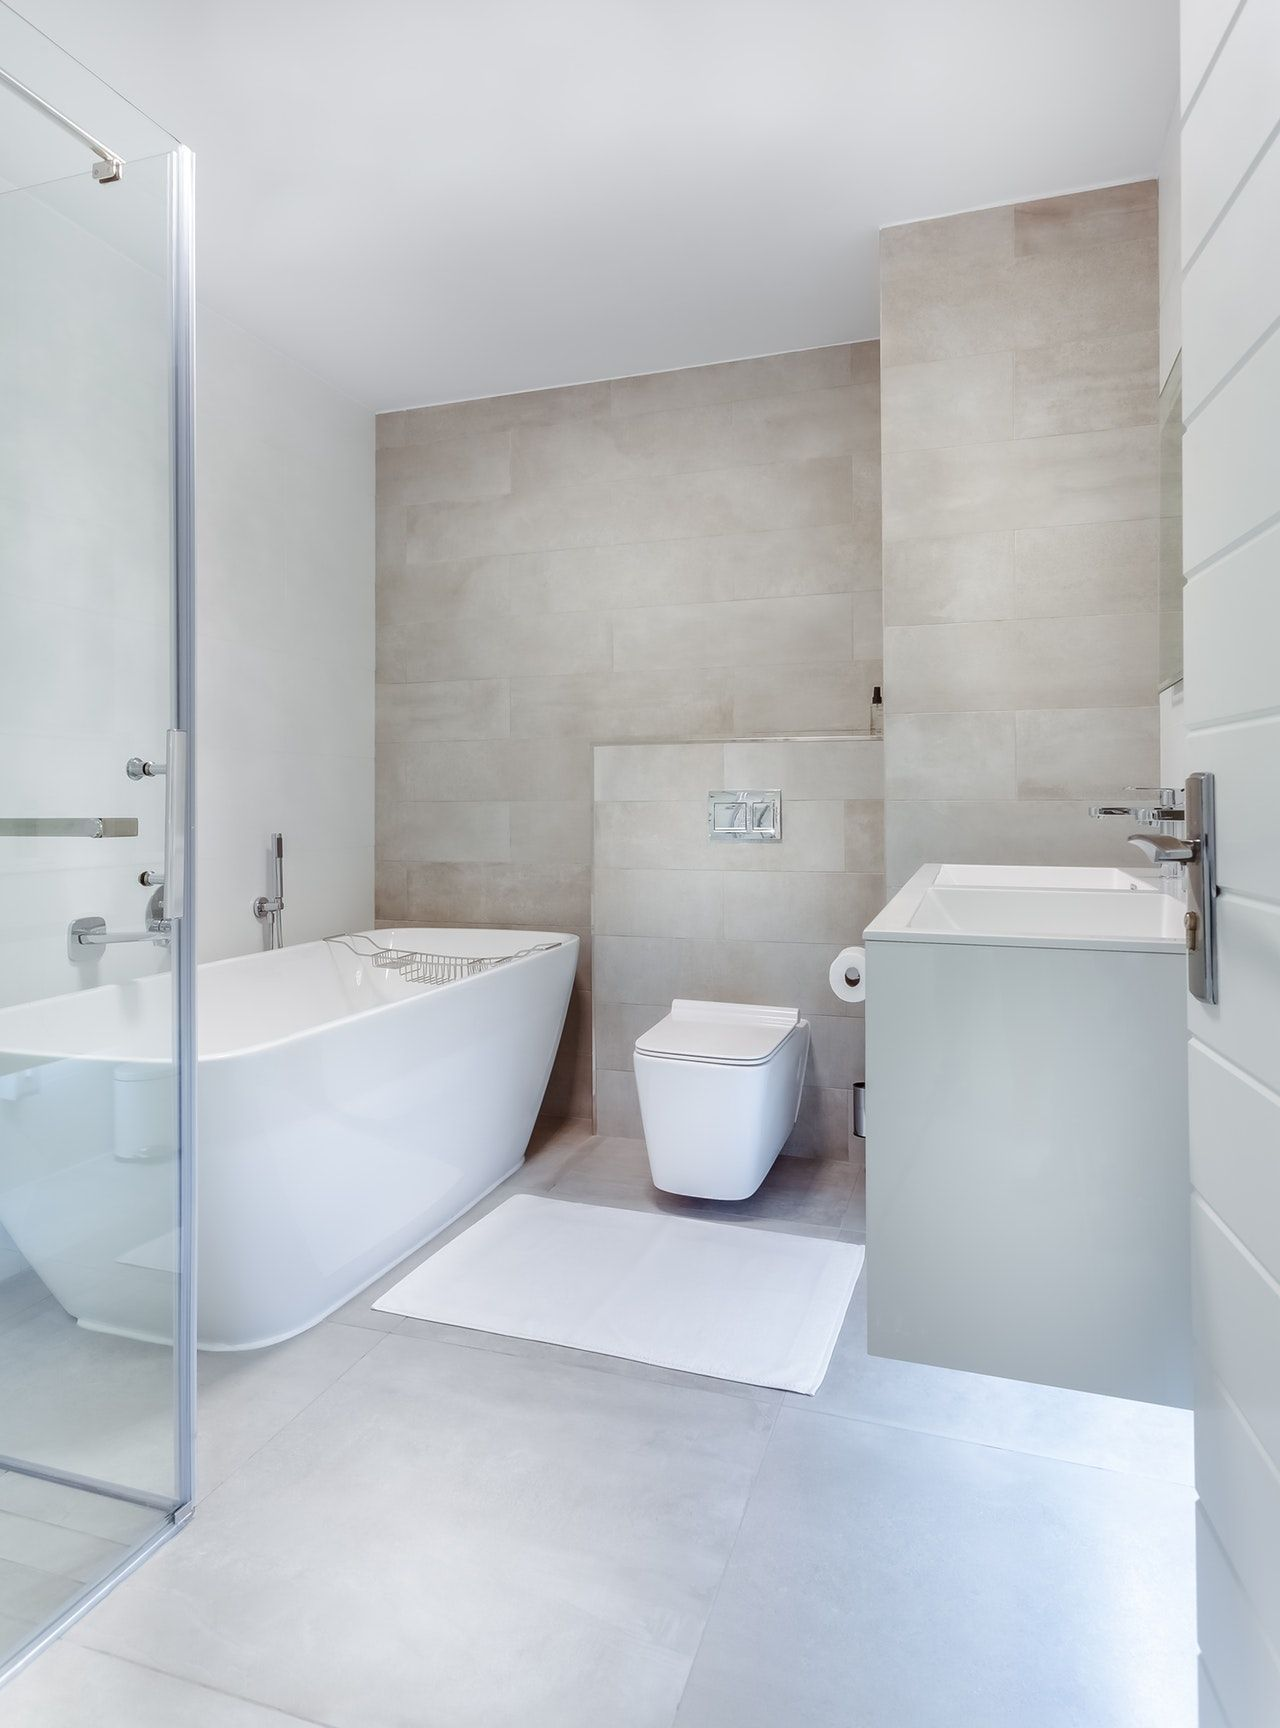 10 Common Bathroom Design Mistakes During Home Renovation In 2020 Bathroom Design Small Bathroom Bathroom Interior